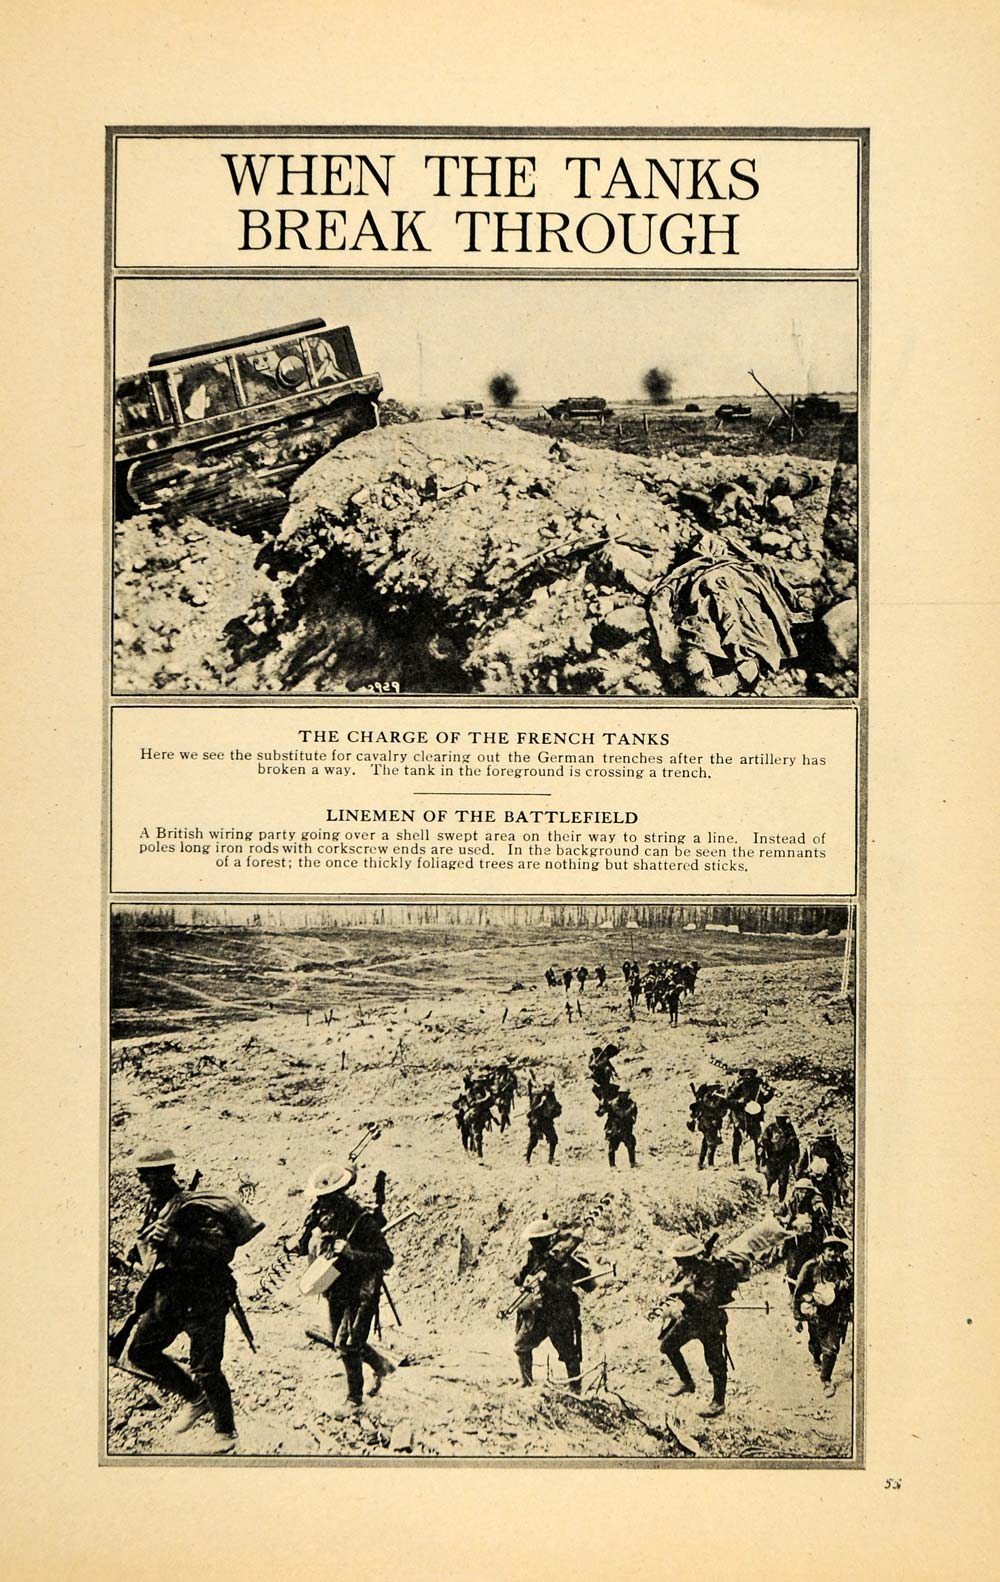 1917 Print French Tanks Charge Enemy German Line WWI - ORIGINAL HISTORIC ILW2